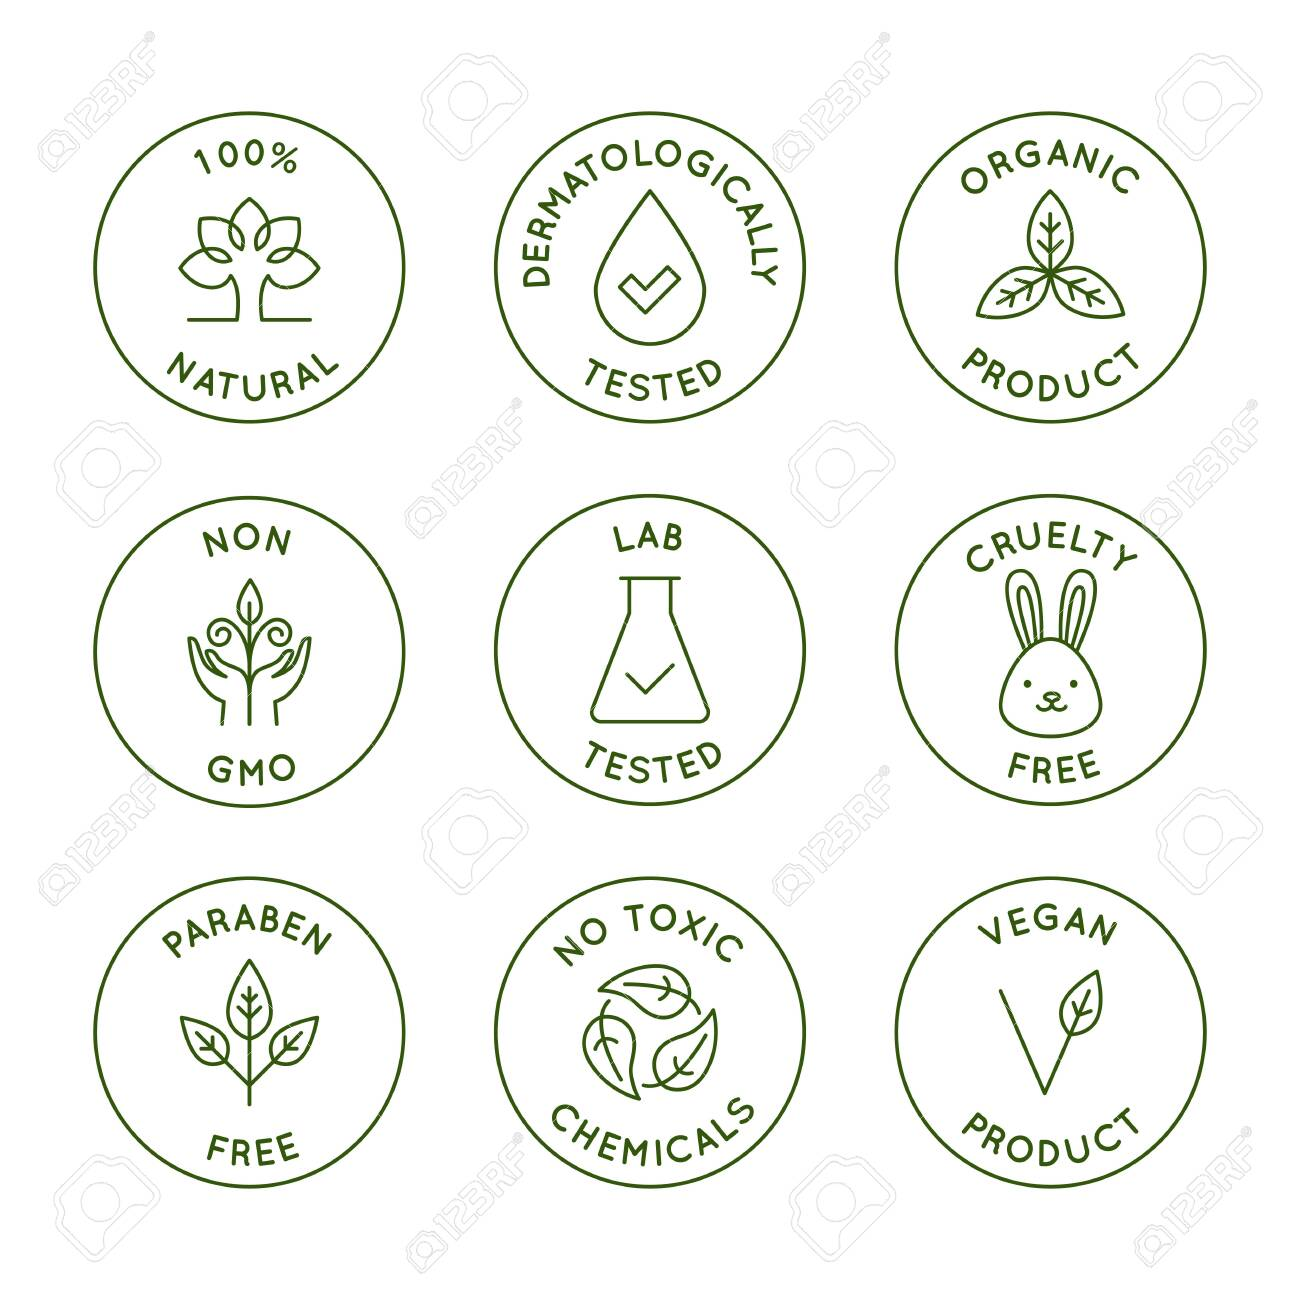 Vector set of design elements, design templates, icons and badges for natural and organic cosmetics packaging in trendy linear style - 100% natural, dermatologically and lab tested, vegan and cruelty free - 127686135